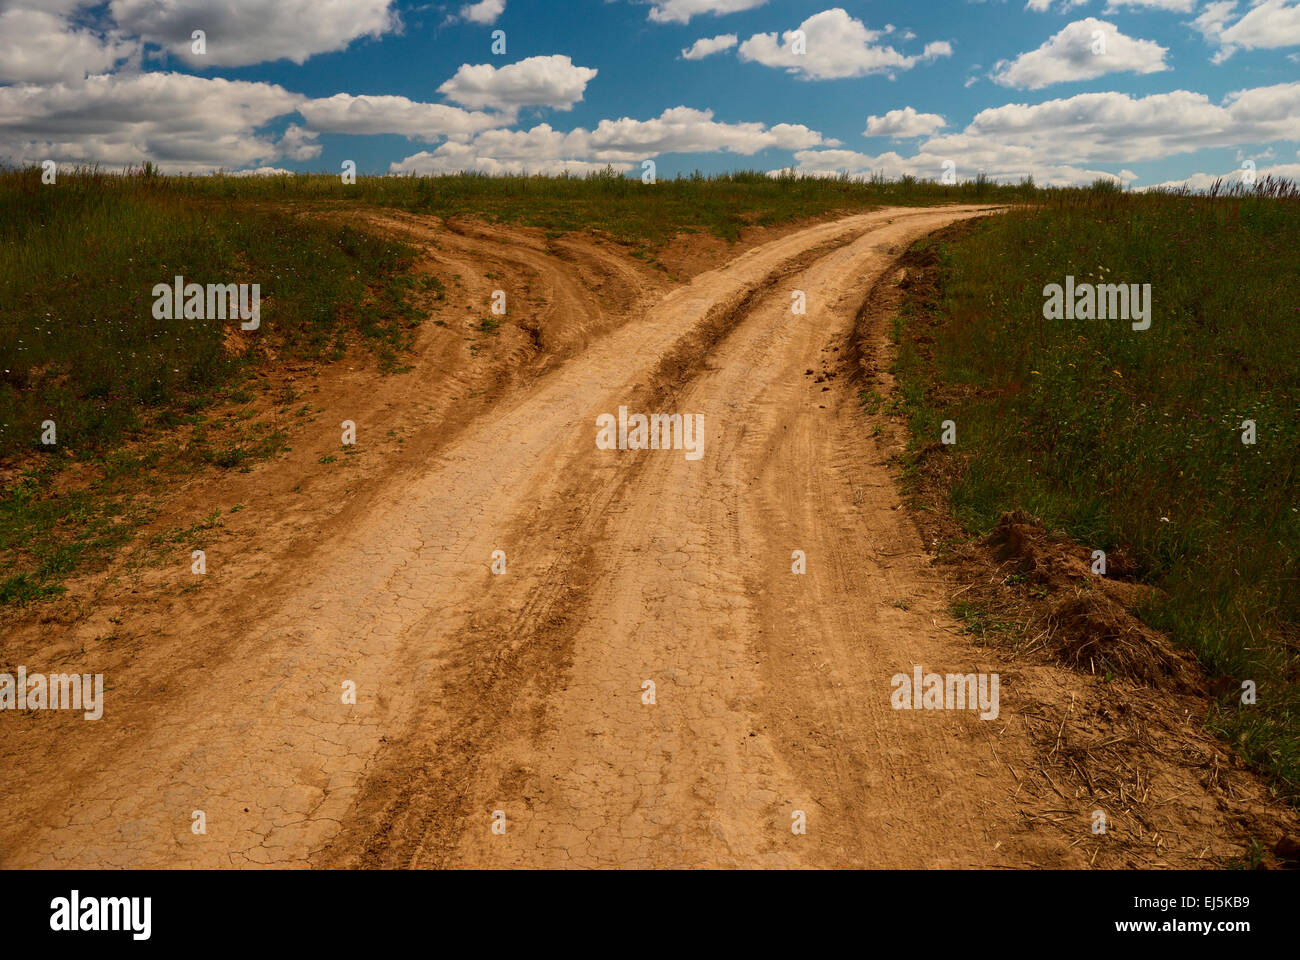 One country road divides into two roads - Stock Image